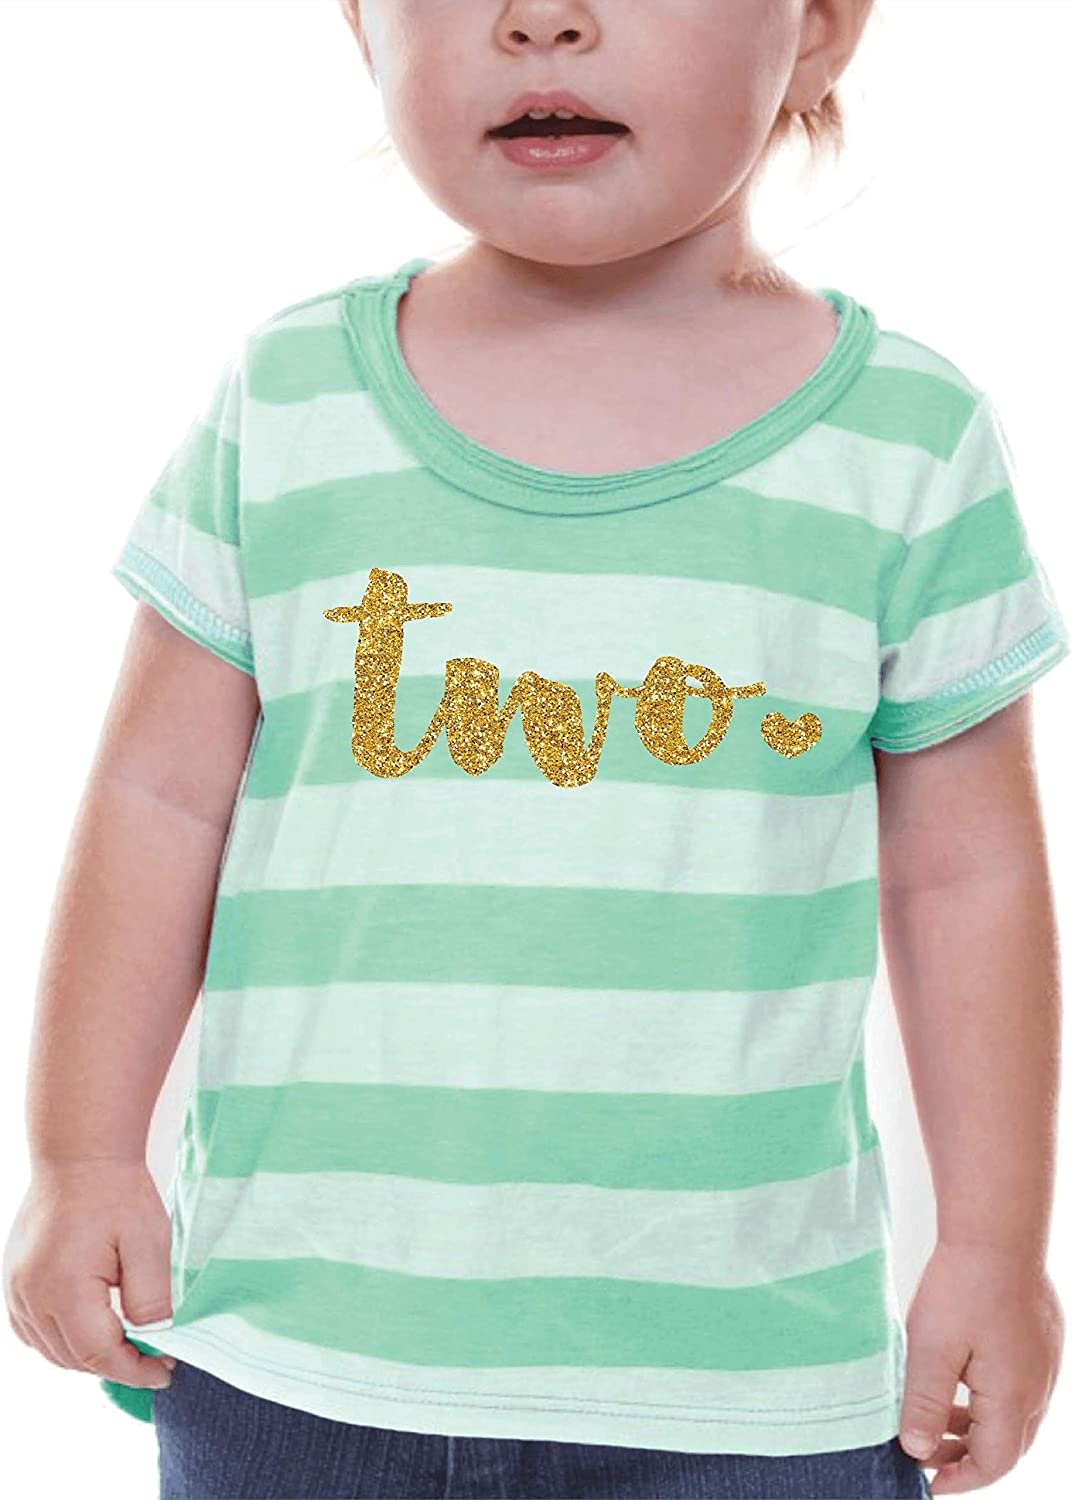 Bump and Beyond Designs Second Birthday Shirt Girl Second Birthday Outfit